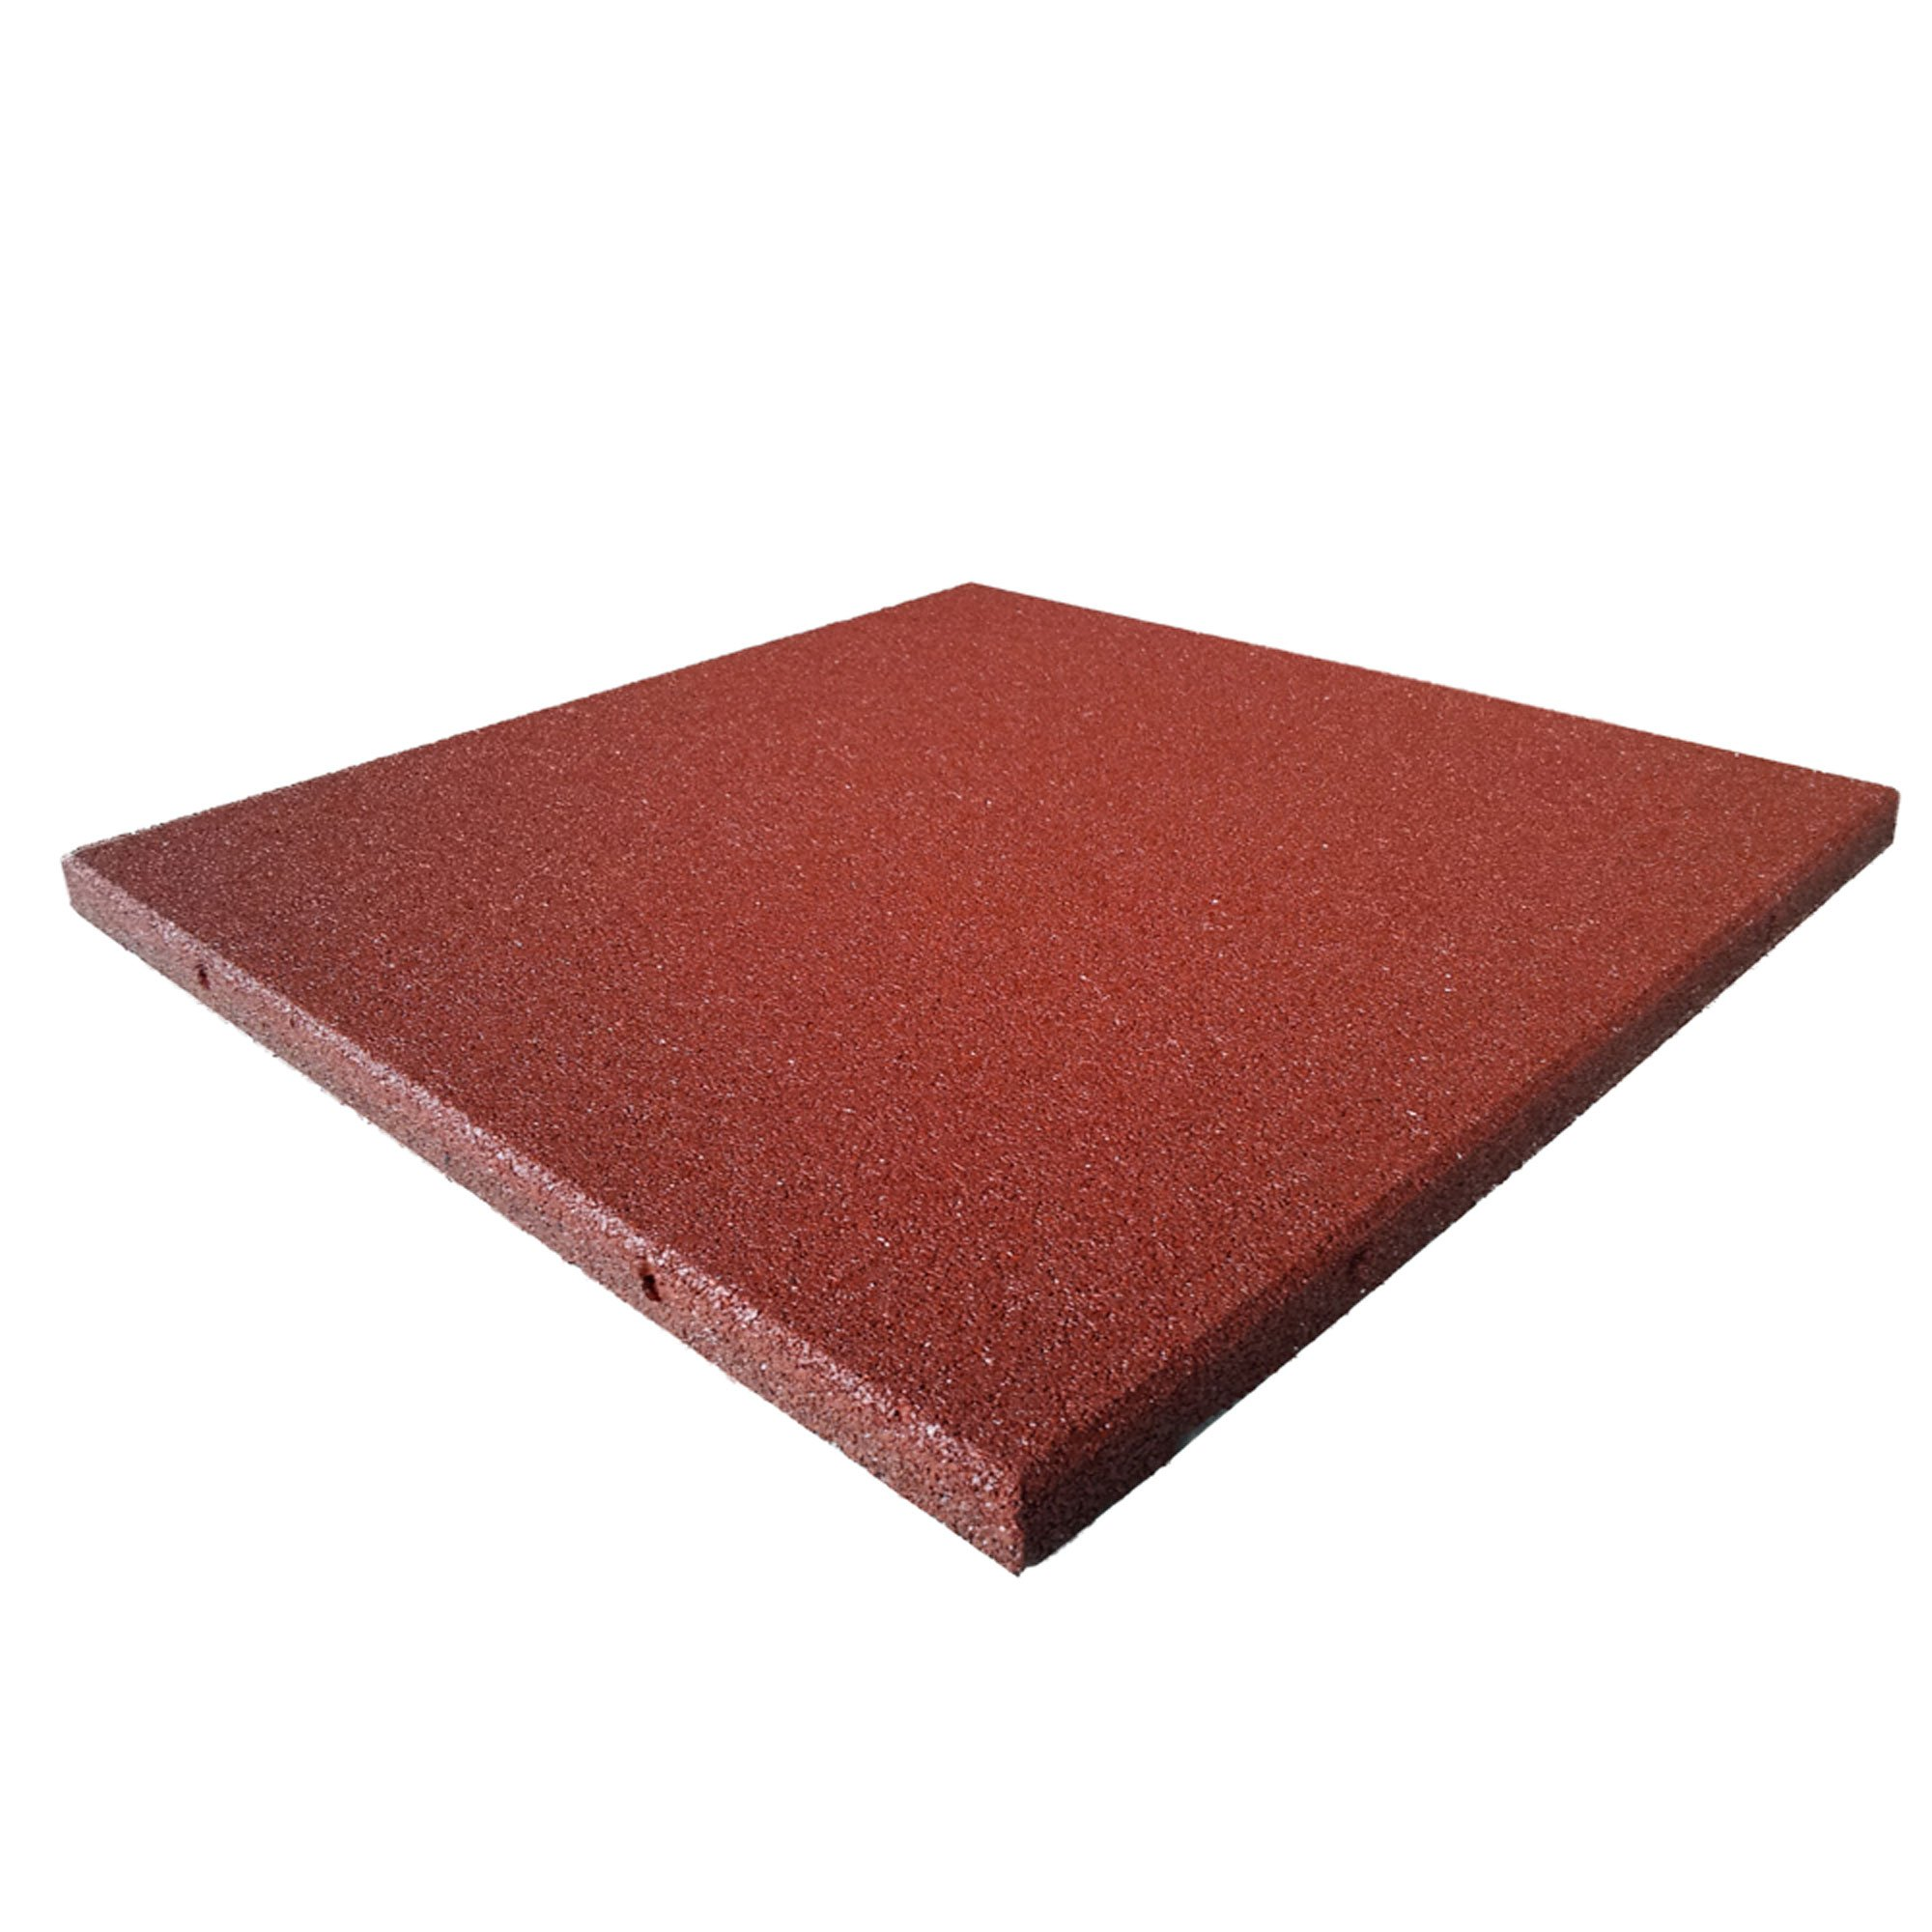 Rubber Cal Eco-Sport Interlocking Tile-Pack of 5, Red, 3/4 x 20 x 20-Inch